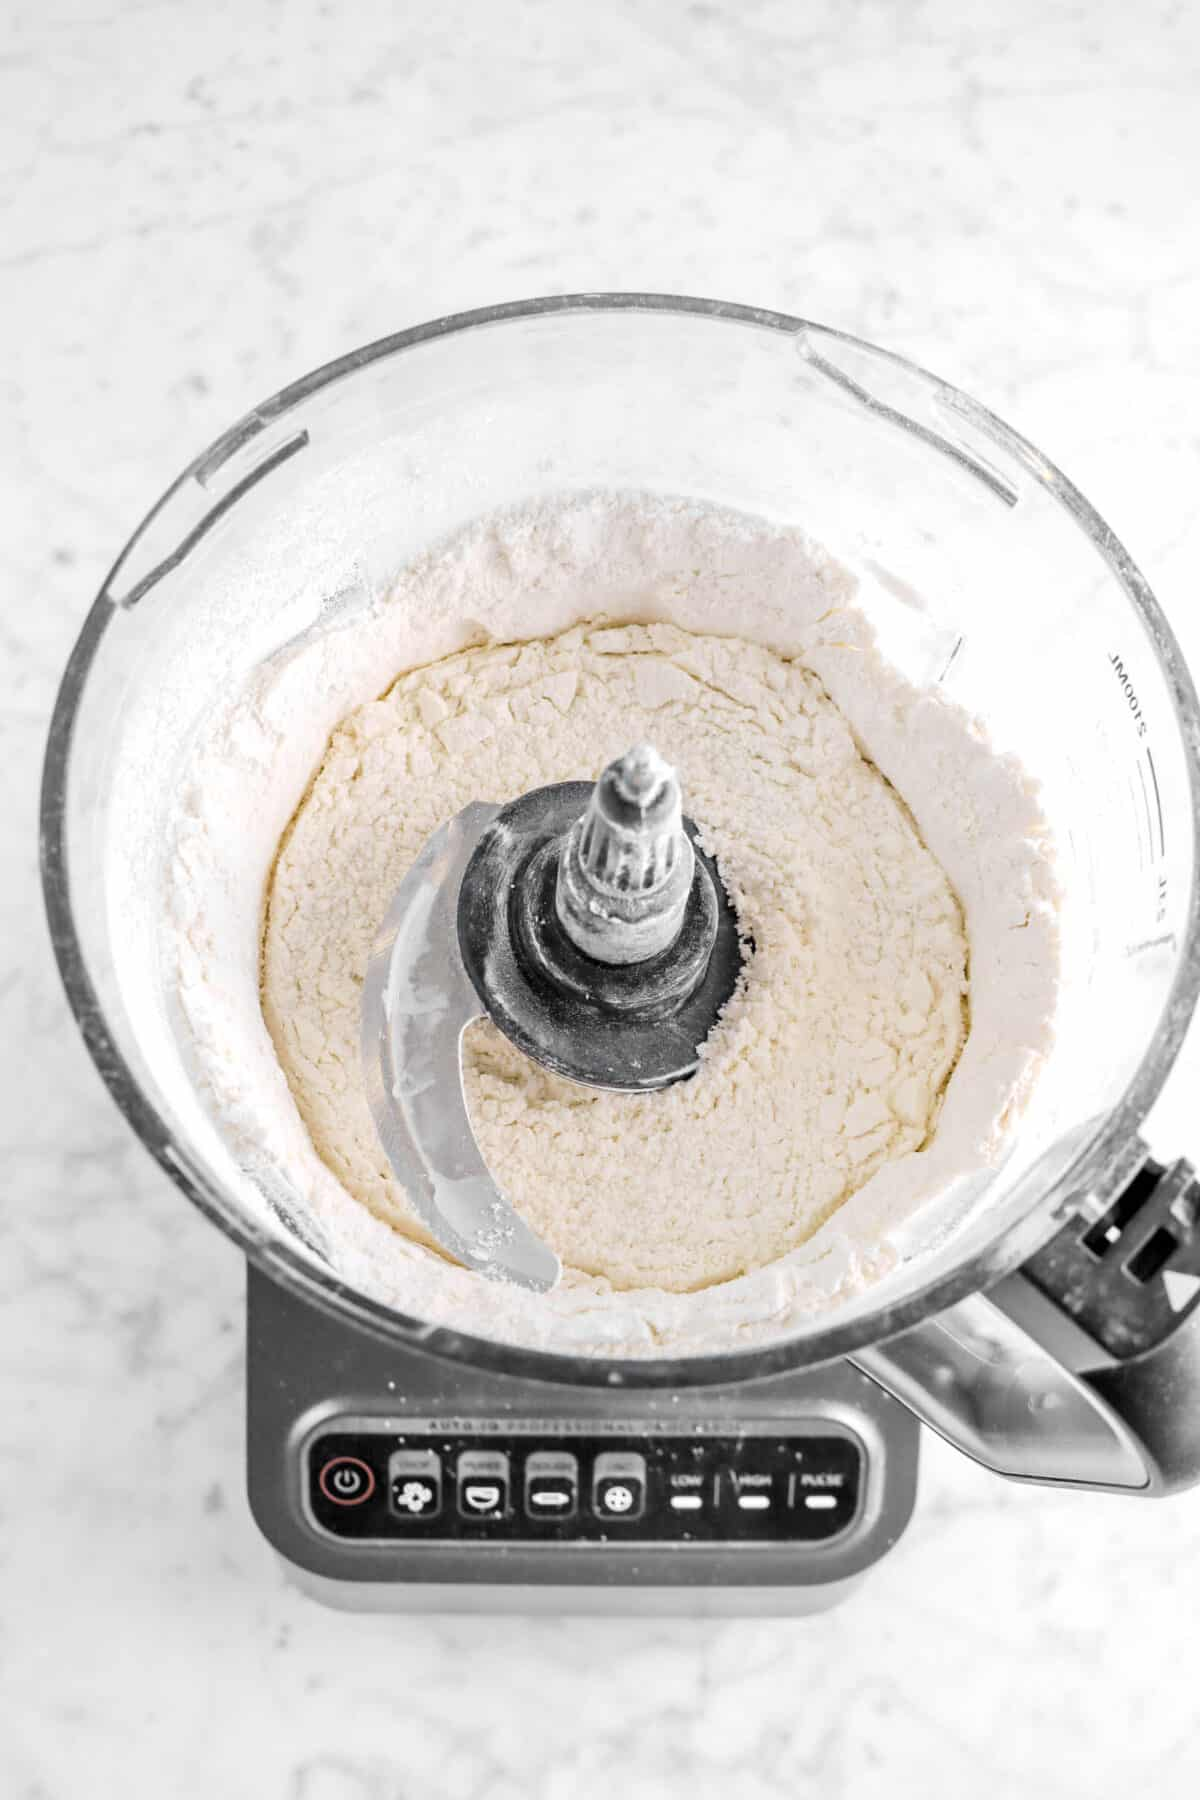 dry ingredients mixed in food processor